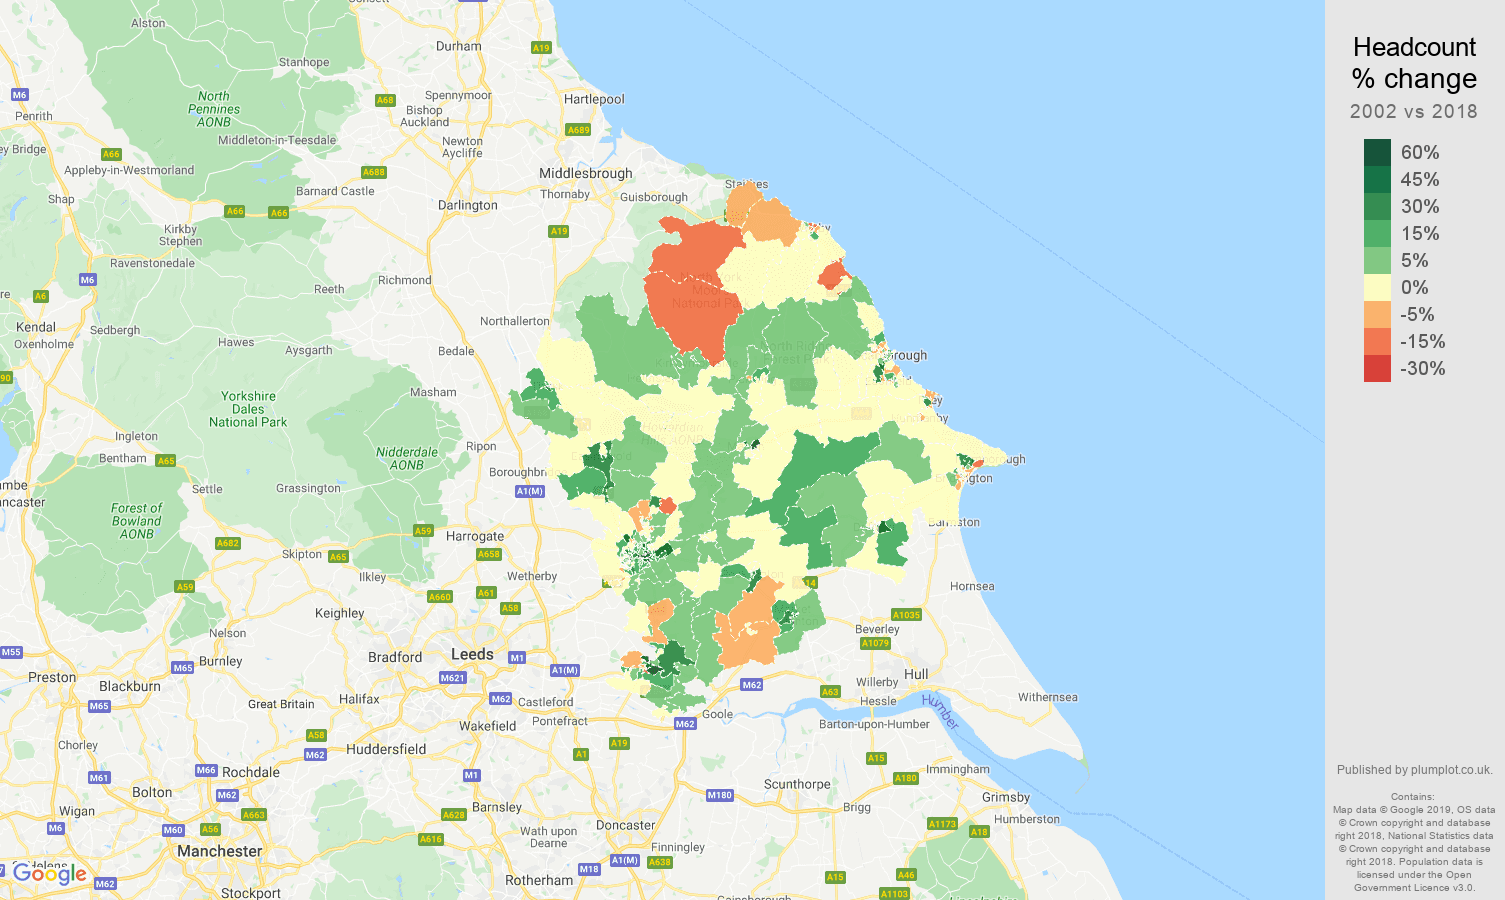 York headcount change map